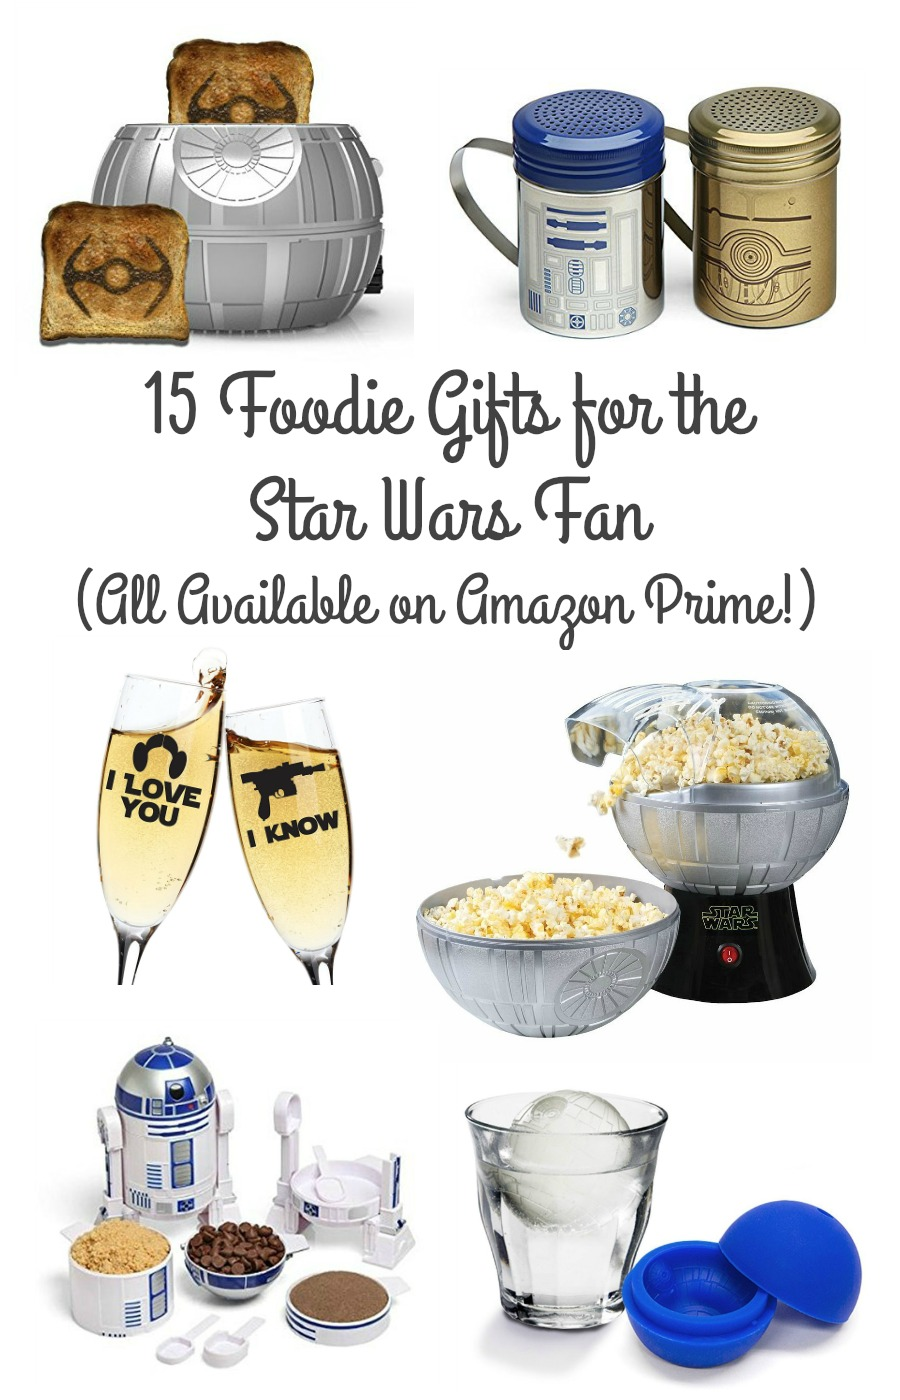 Frugal foodie mama 15 foodie gifts for the star wars fan whether you are a huge star wars fan yourself or you happen to have one on solutioingenieria Gallery